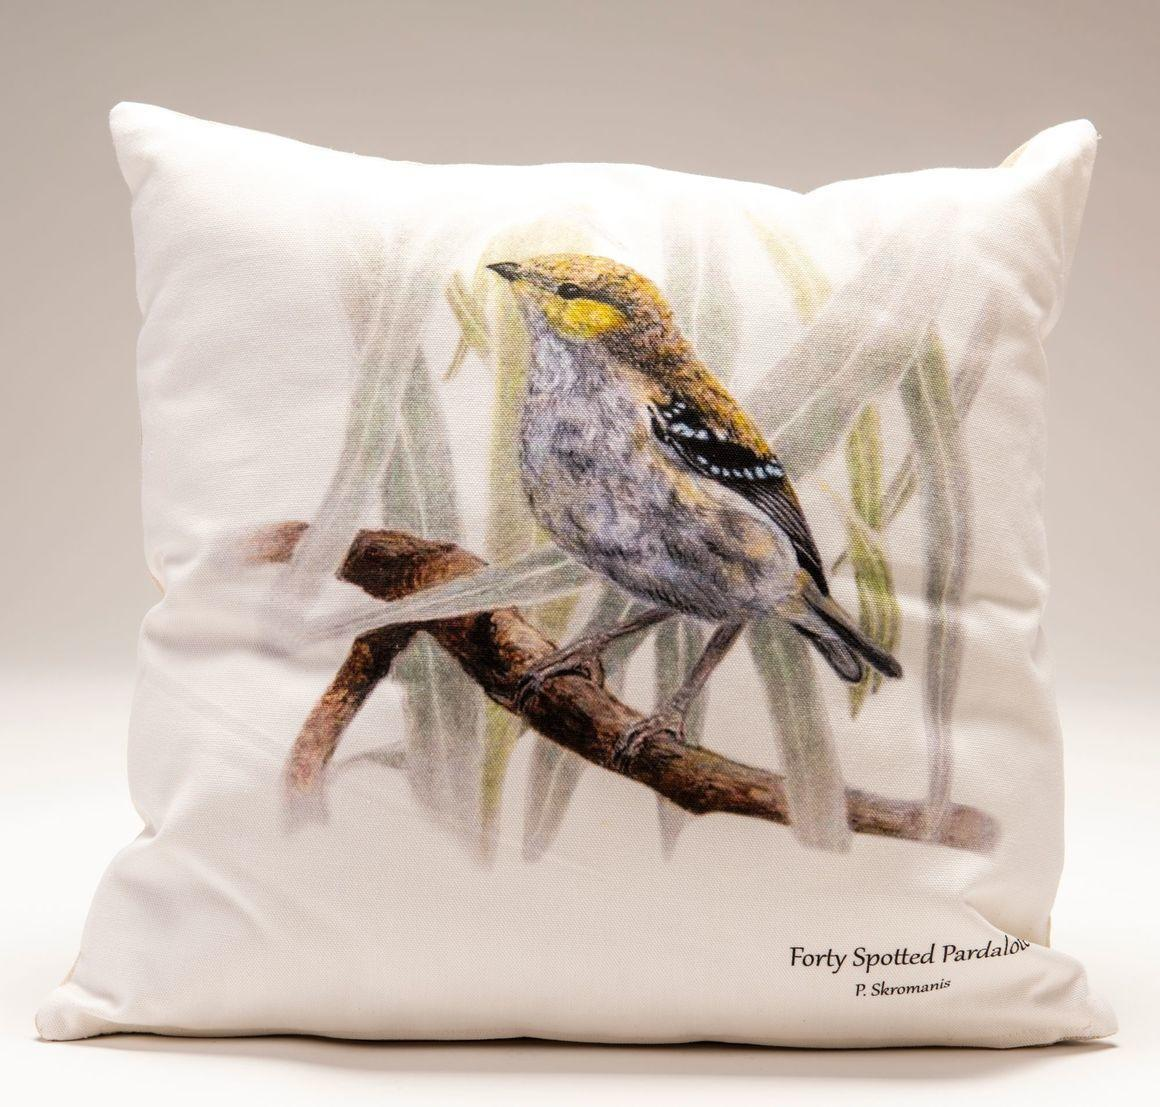 Cushion Covers - Forty-Spotted Pardalote   Trada Marketplace